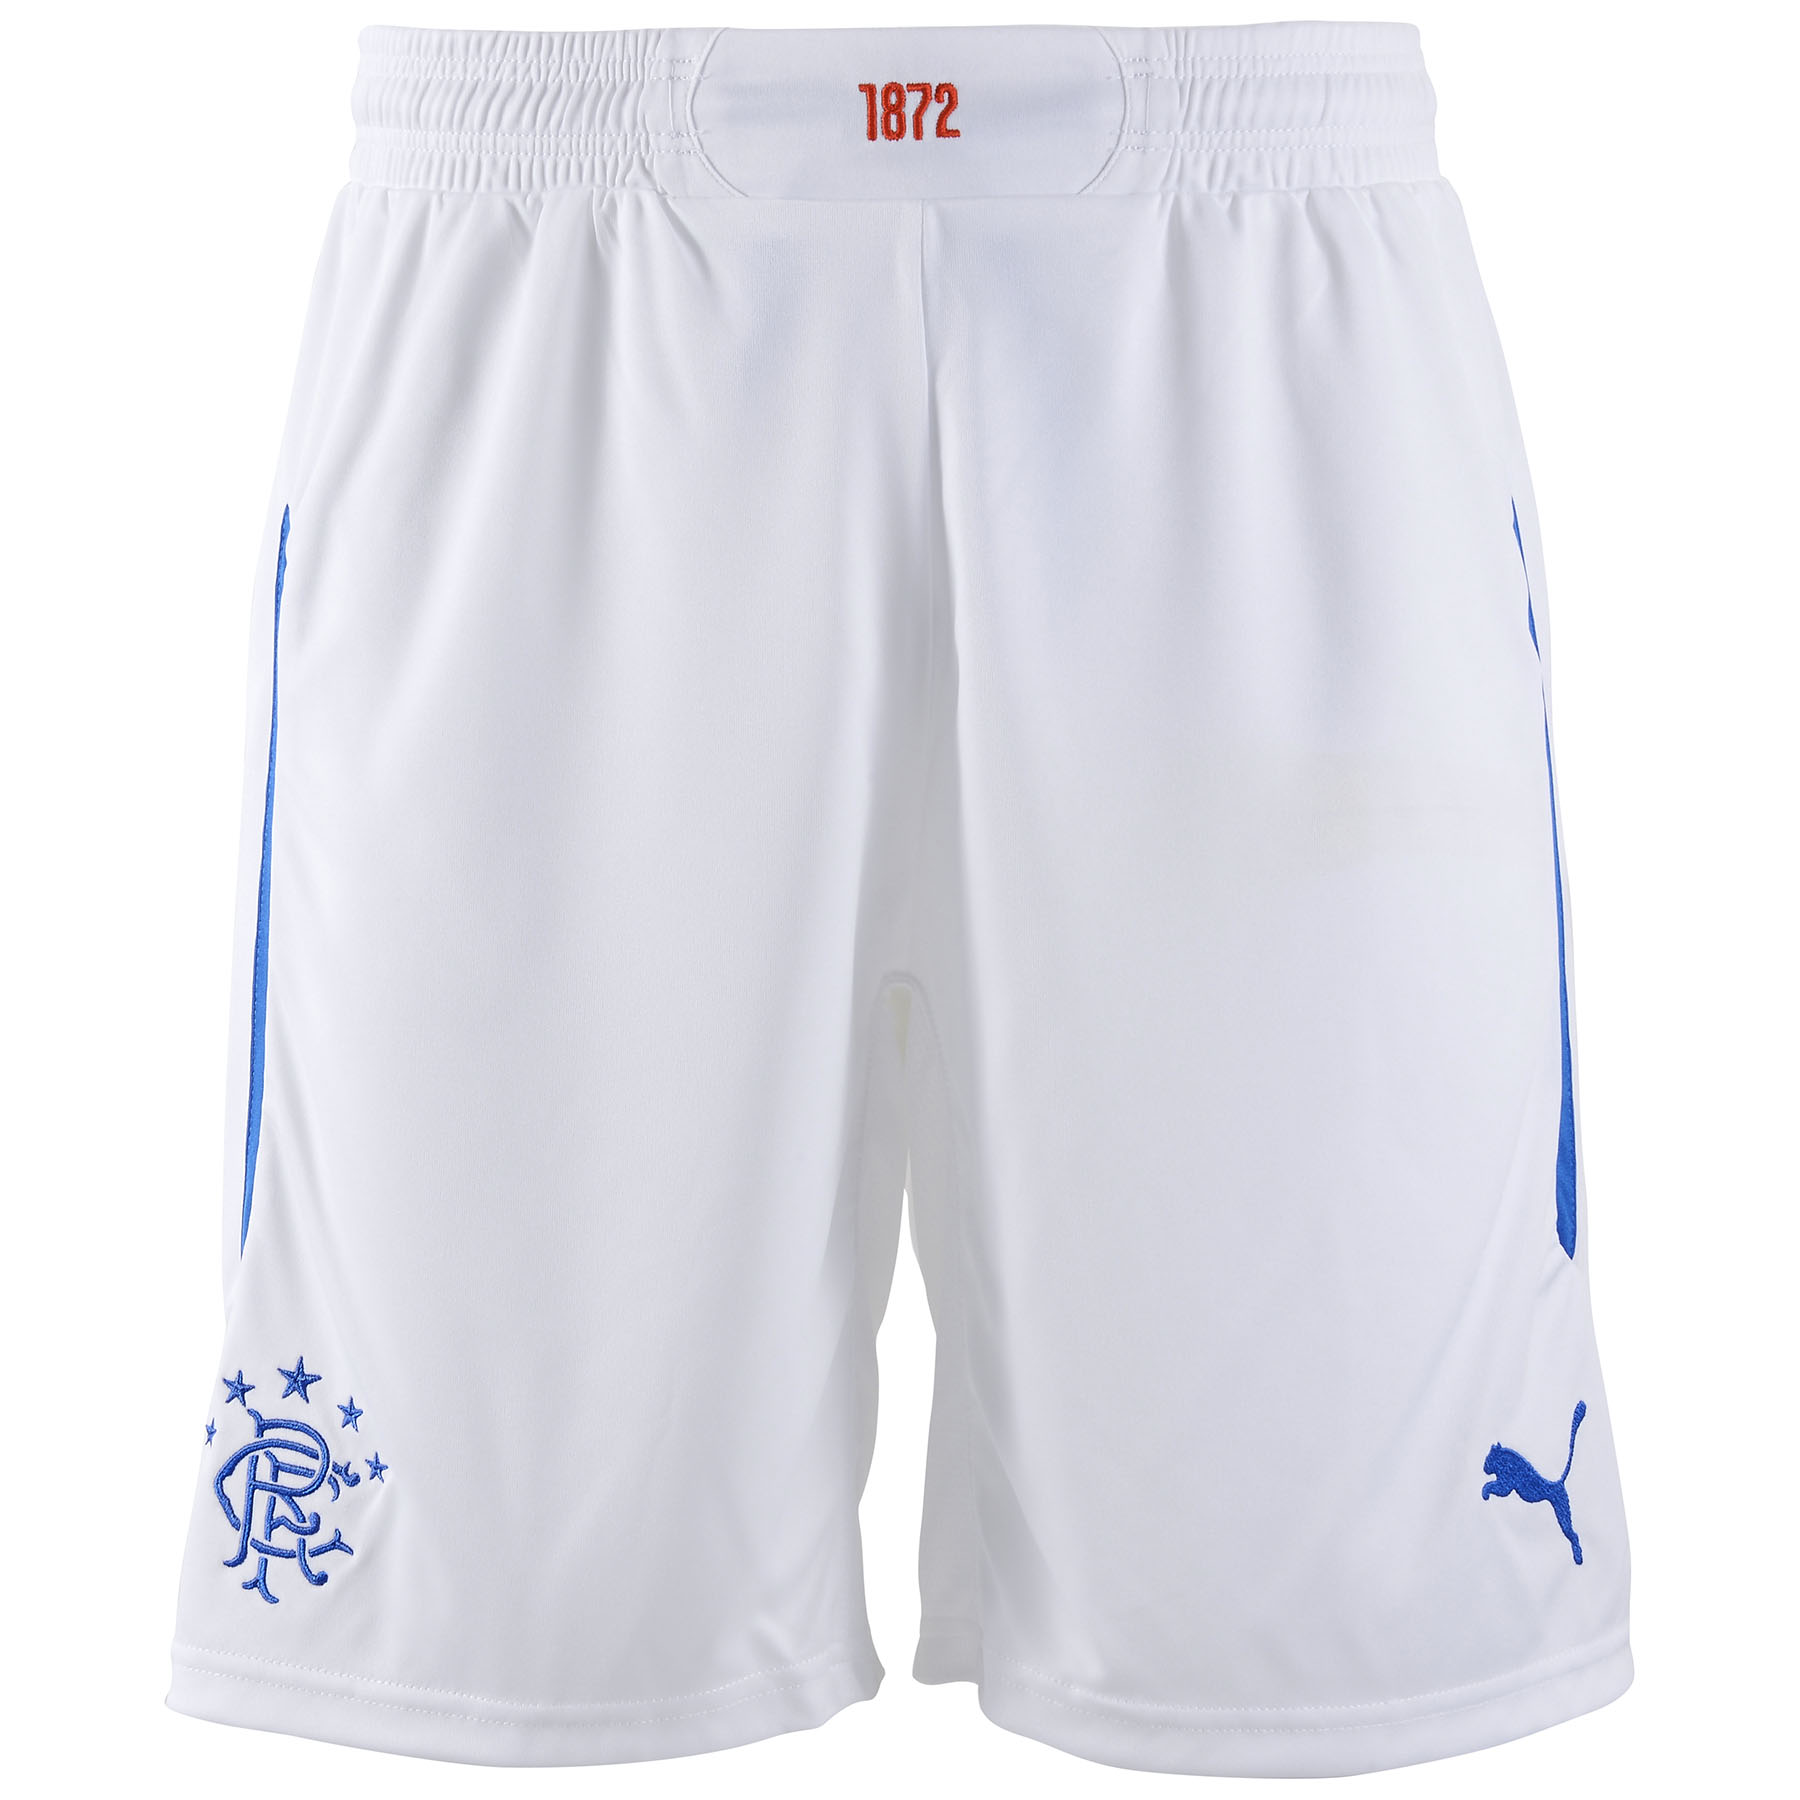 Glasgow Rangers Home Shorts 2014/15